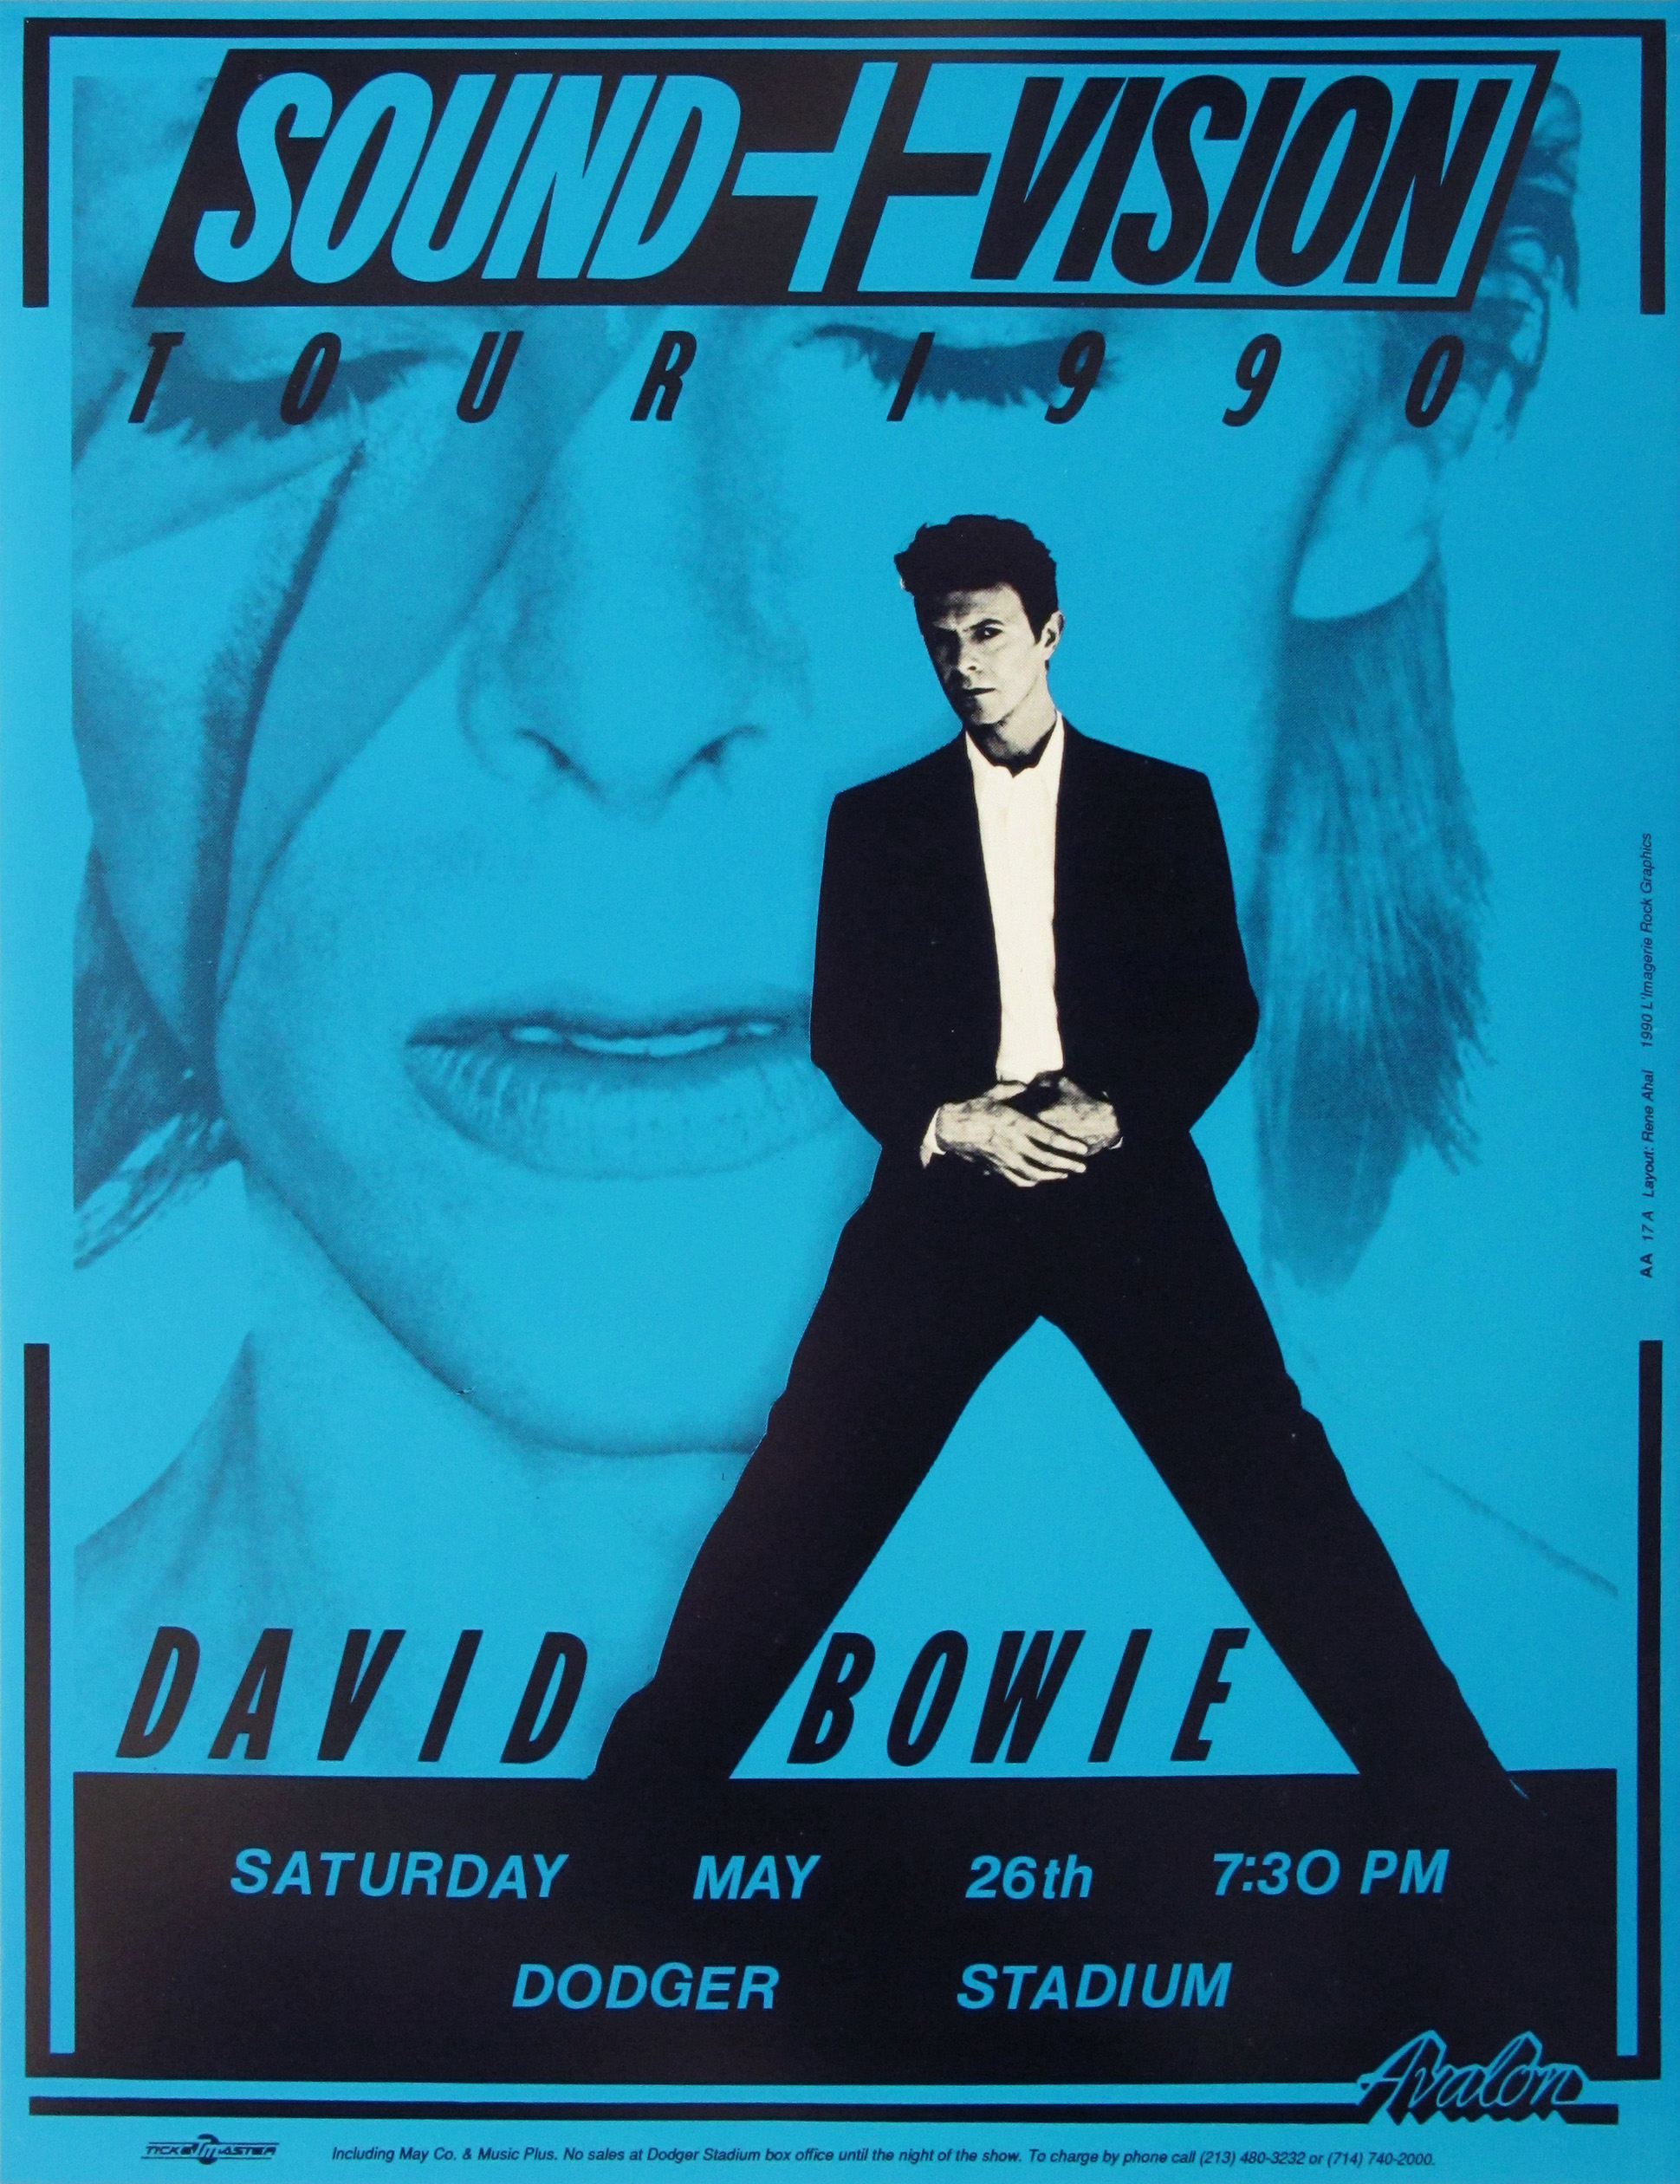 Sound Of Music >> David Bowie Concert Poster (Blue Version) | Limited Runs